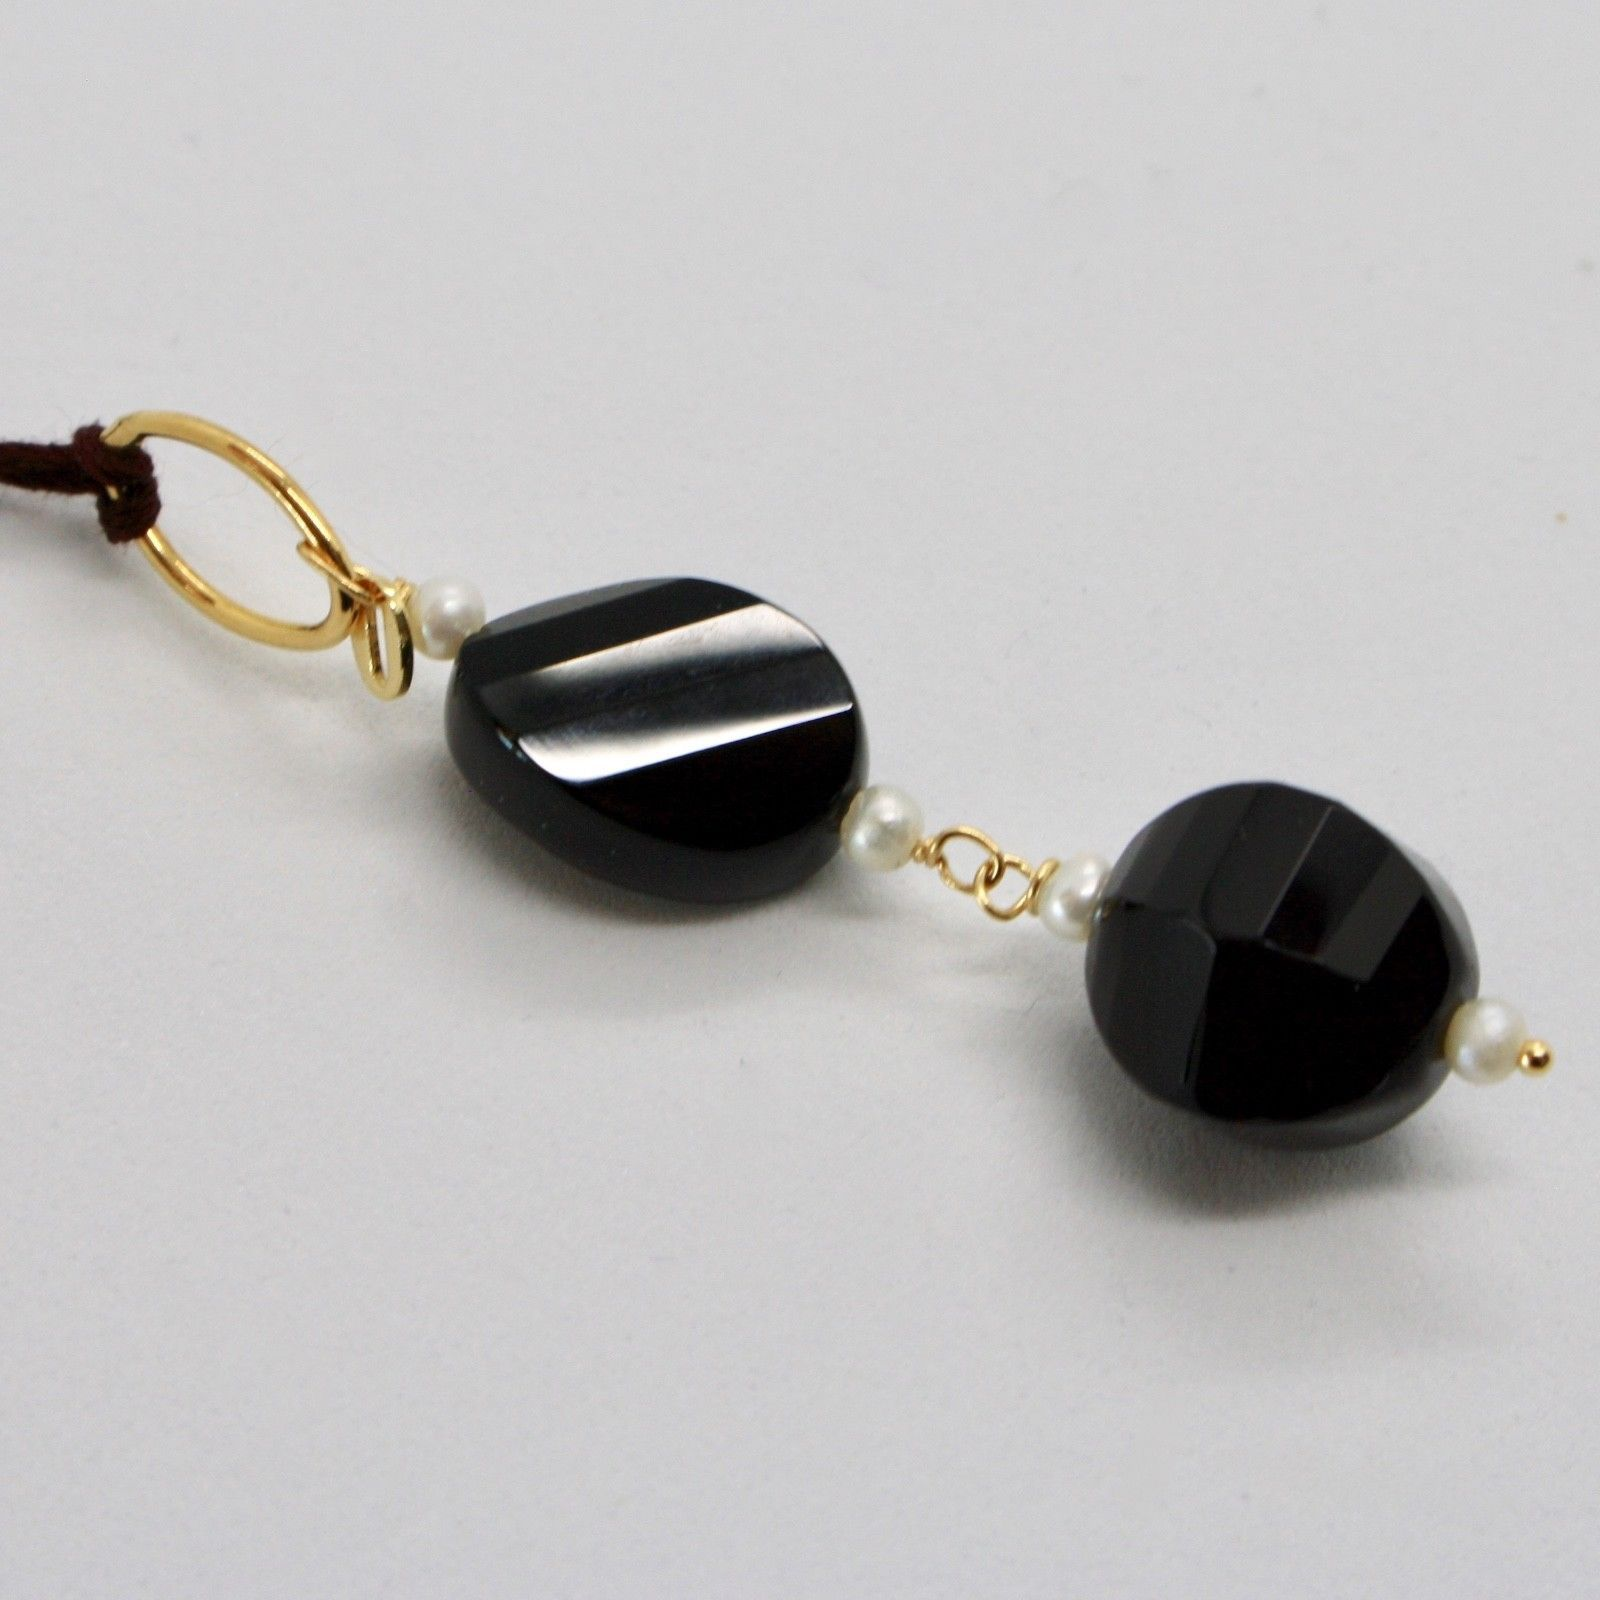 PENDANT YELLOW GOLD 18KT 750 ONYX NATURAL BLACK AND MINI PEARLS OF WATER DOLCE